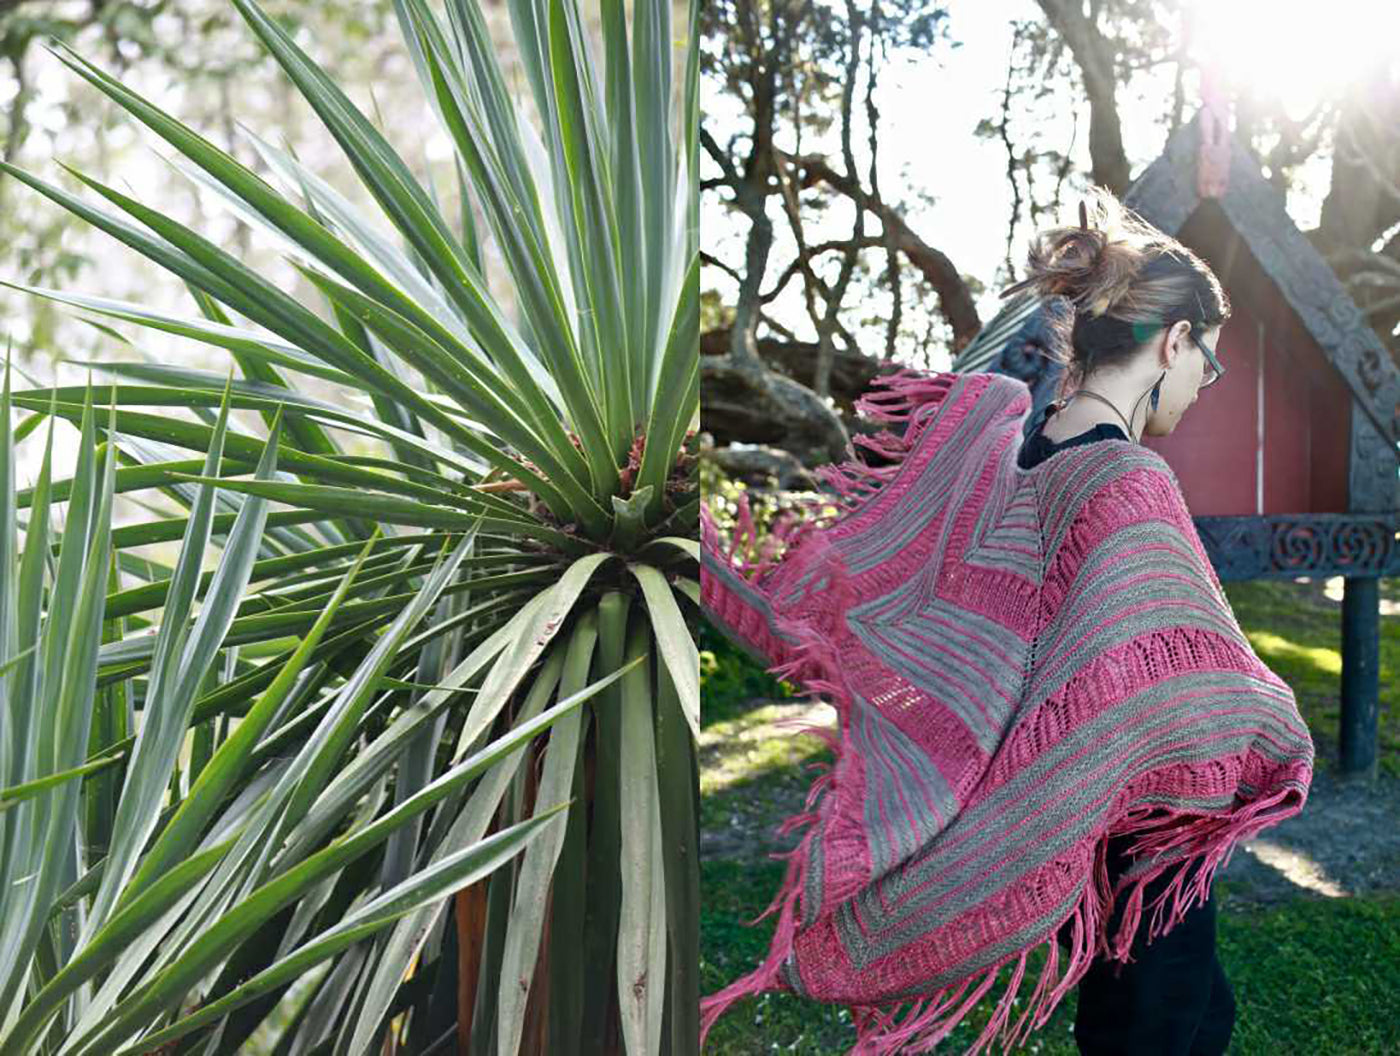 Split photograph.  Photograph on the left is green palm leaves.  Photograph on the right is women walking away  wrapped with her bright pink and tan knitted shawl slightly blowing in the breeze behind her.